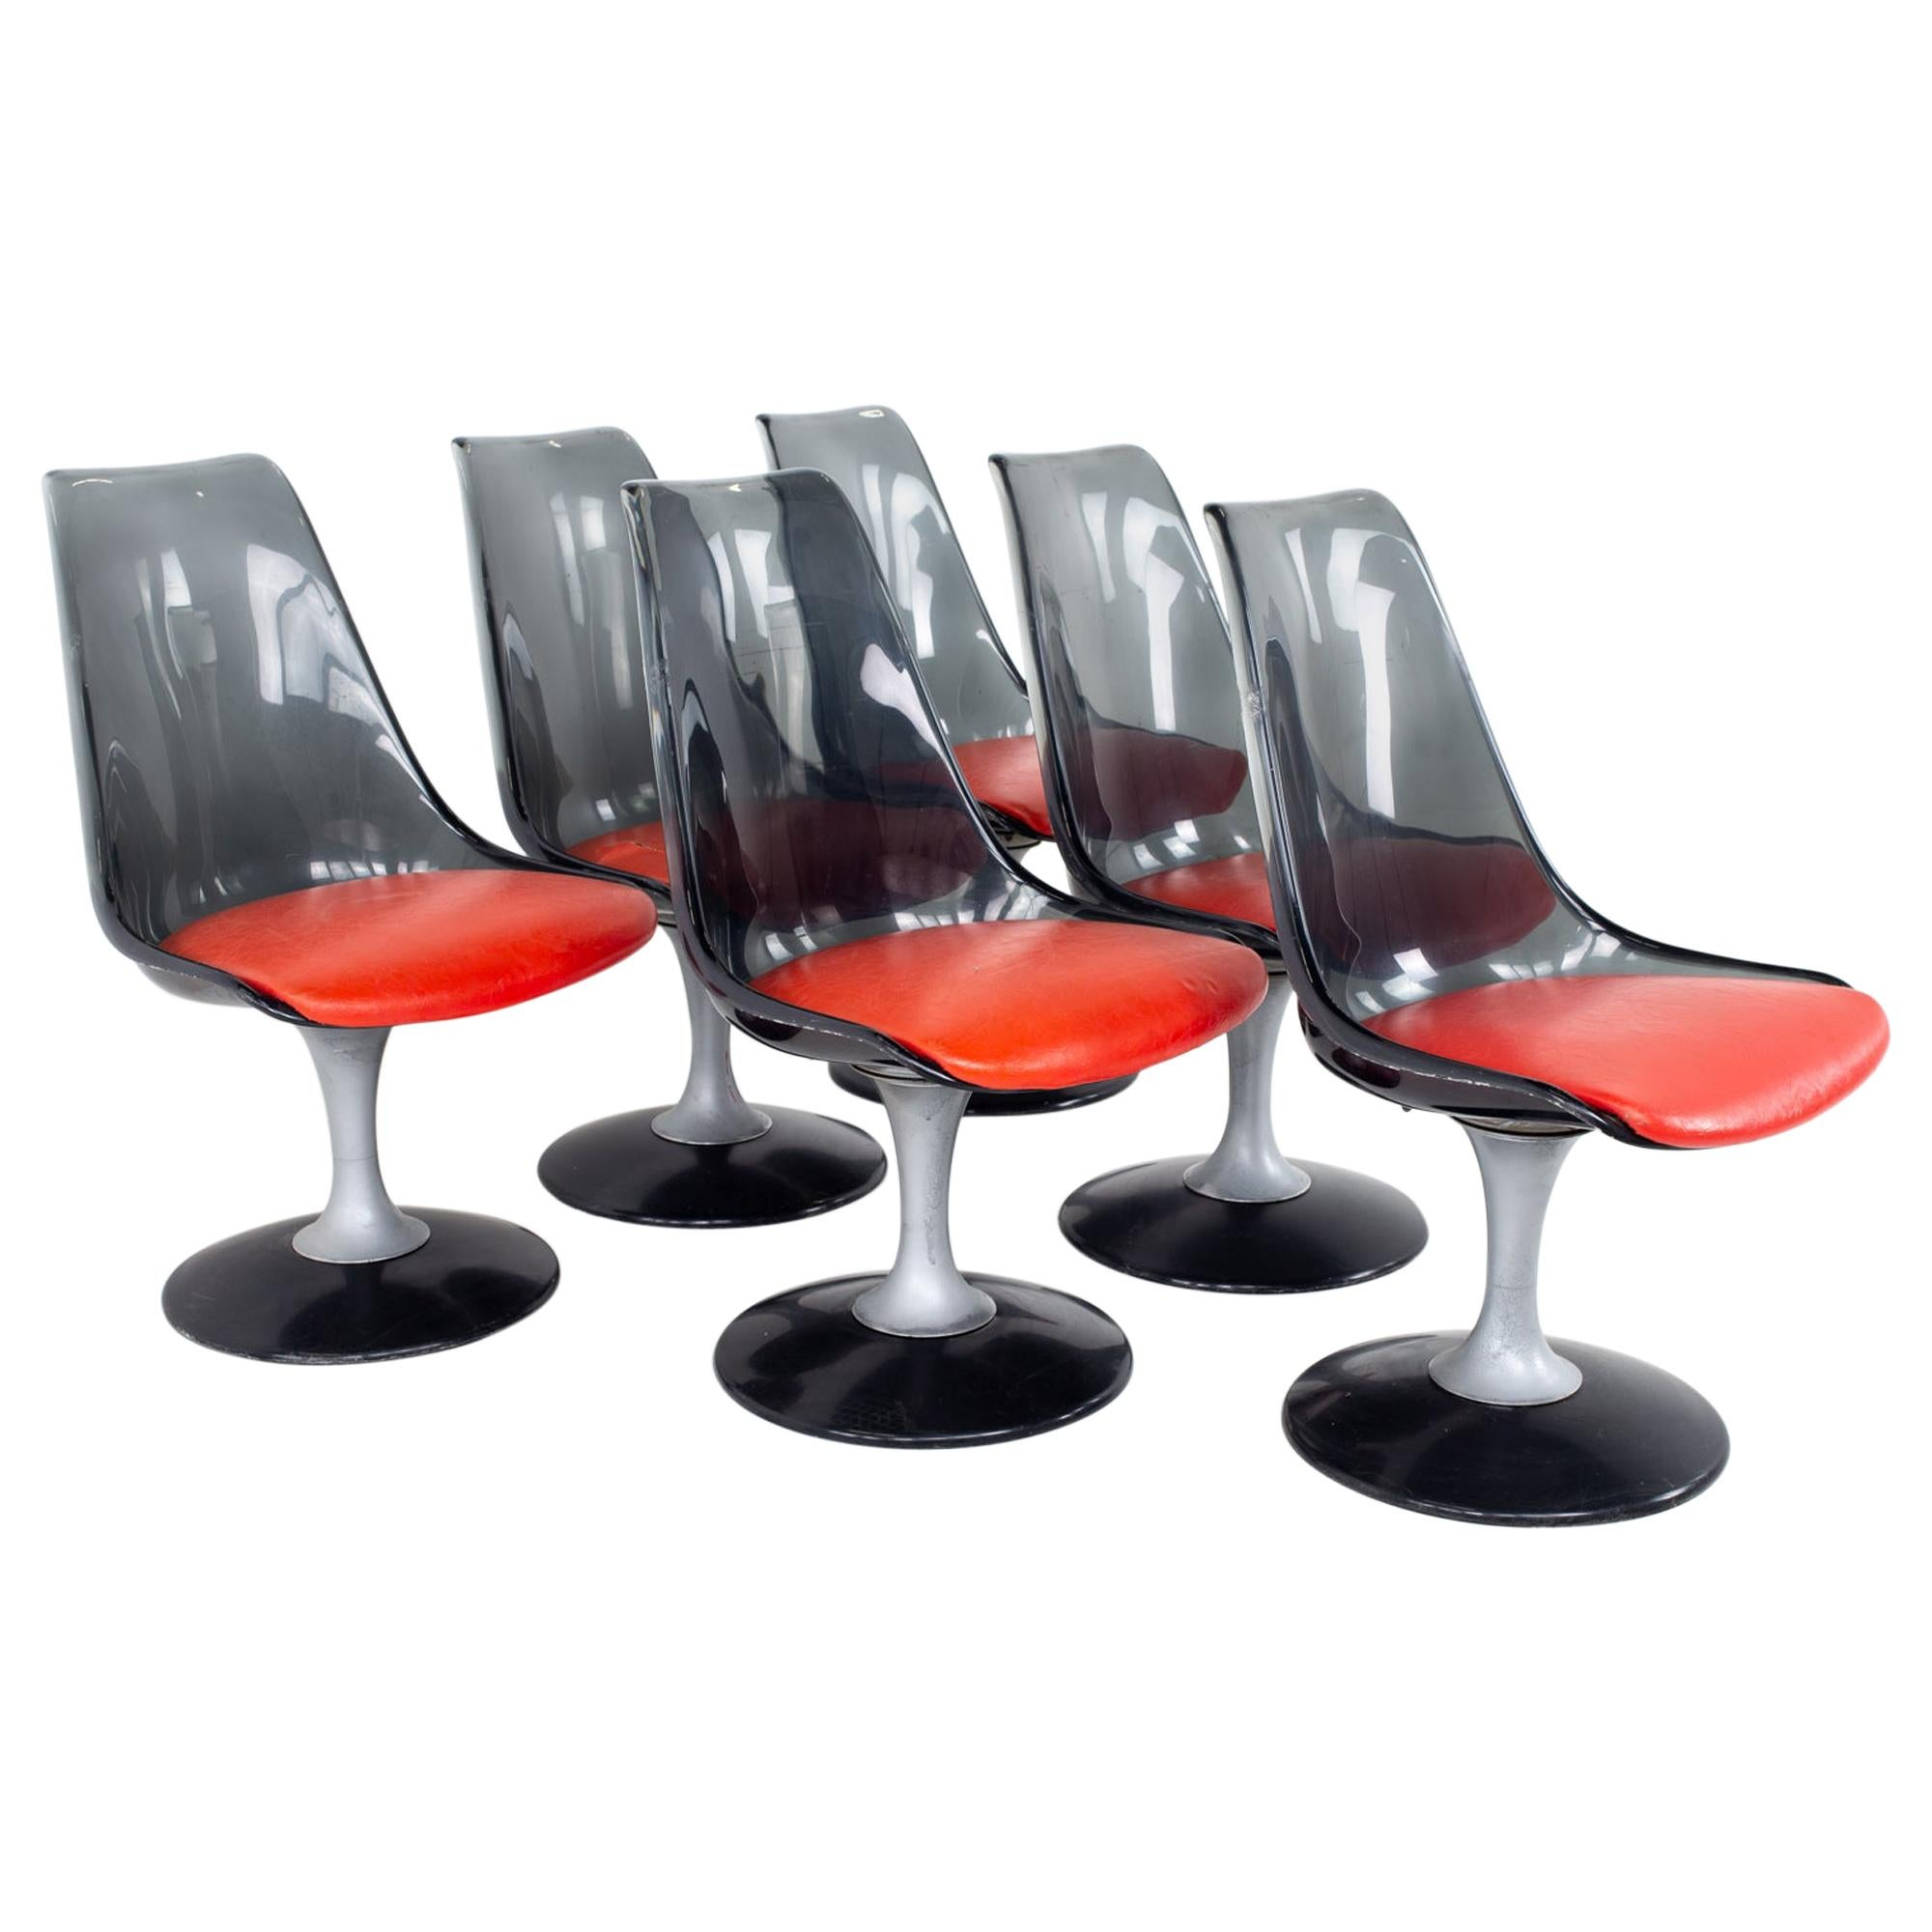 Chrome Craft Mid Century Smoked Lucite Dining Chairs, Set of 6